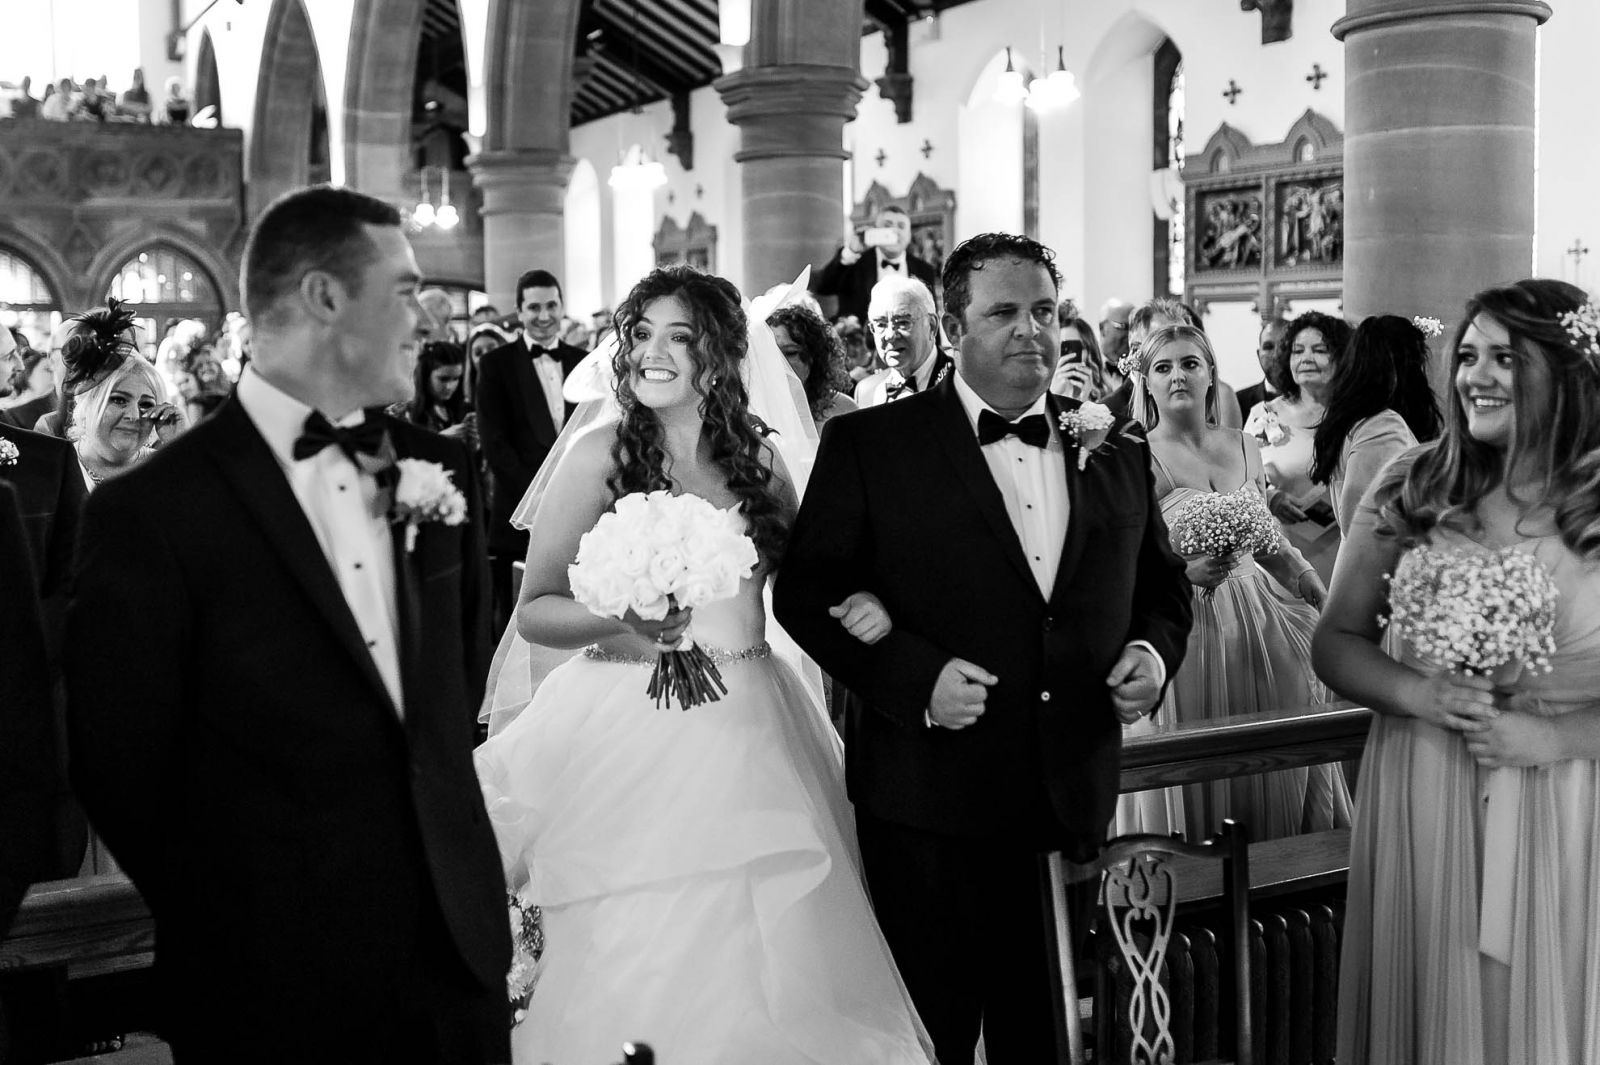 Groom turns to see his bride as she walks up the aisle